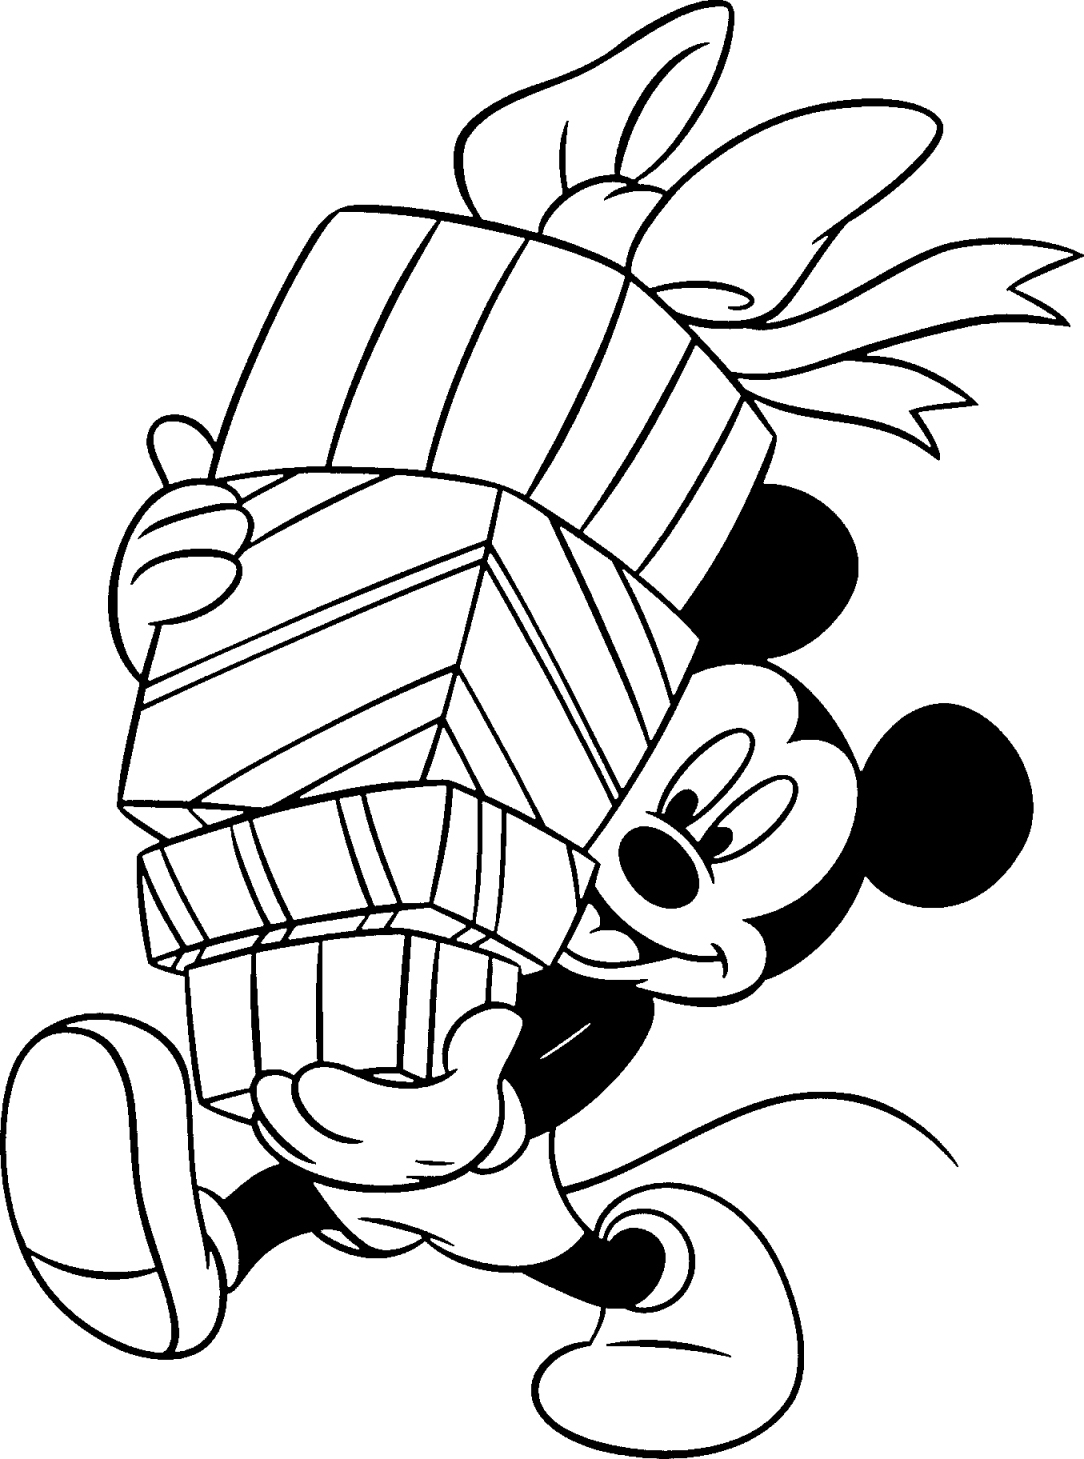 christmas pictures to color coloring pages christmas disney gtgt disney coloring pages christmas color pictures to